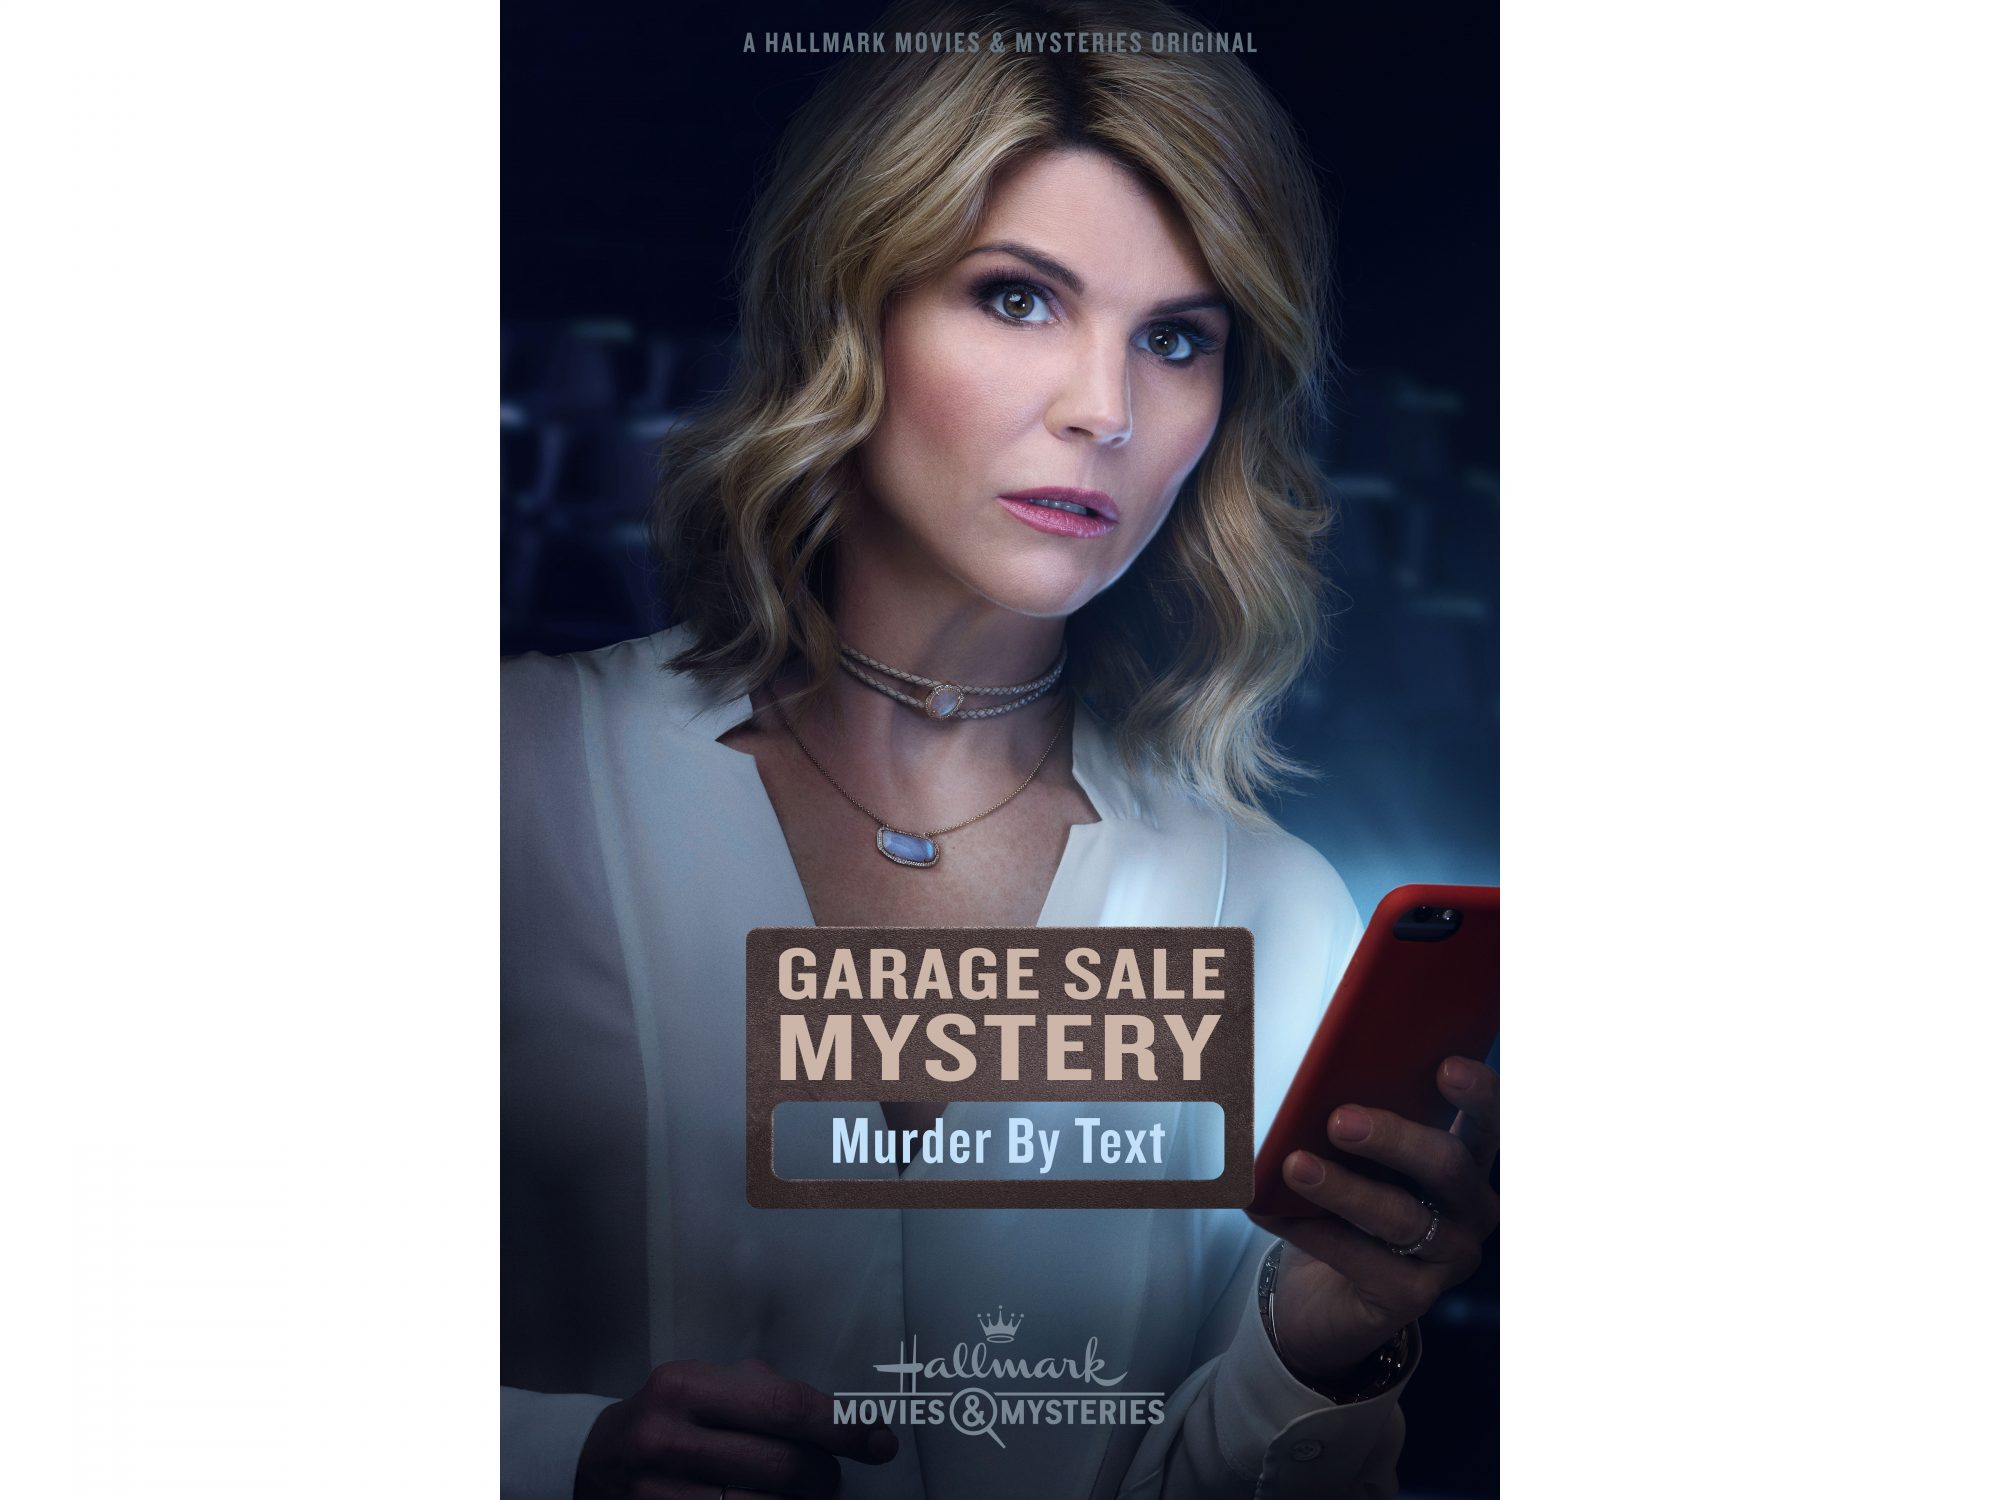 Garage Sale Mystery from Hallmark Movies & Mysteries